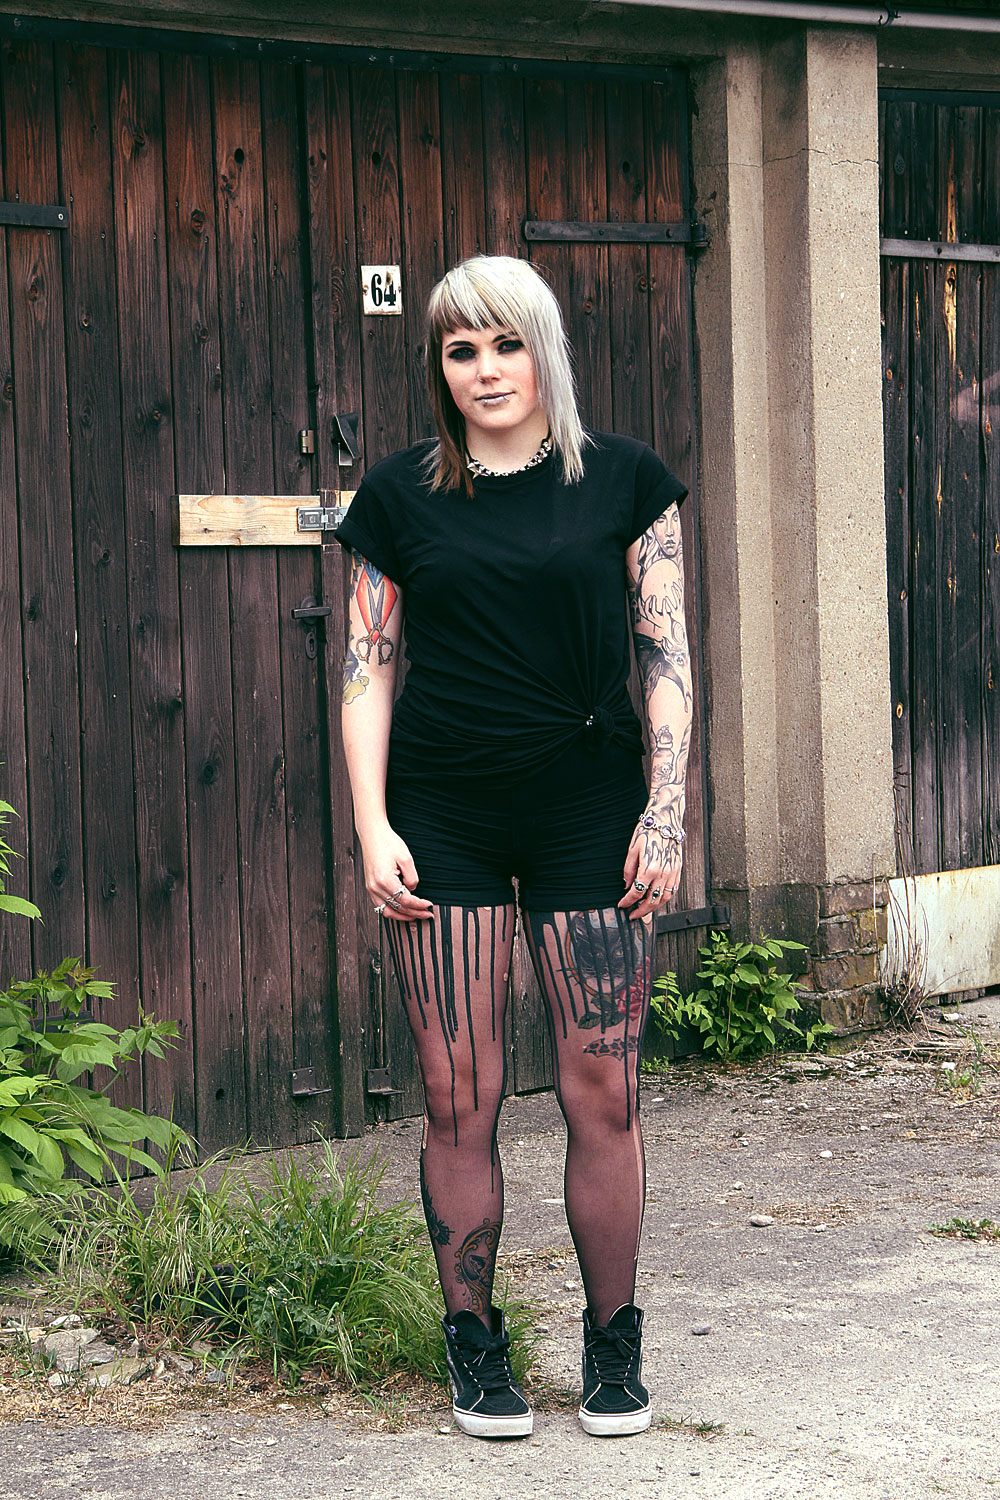 berlin, berlin fashion, berlin streetstyle, berlin fashion blogger, blogger, fashion blogger, punk, grunge, punk fashion, grunge fashion, alternative, alternative fashion, alternative girl, altgirl, snakebites, girls with piercings, scenehair, mode, alternative mode, punk mode, grunge mode, split hair, splithair, girls with tattoos, tattoomädchen, tattoomodel, berlin mode, alternative mode, punkmädchen, punkgirl, graue haare, grey hair, all black, schwarz, higwaist, h&m, highwaist shorts, summer, sommer, vans, mond, moon, sk8hi, hitops, tshirt, geknotetes shirt, knotted shirt, tunnel, 12mm, plug, plugsm, mandala, mandala plug, crazyfactory, crazy factory, urb, melting tights, latex, fun, danze, tanzen, spaß,urb clothing